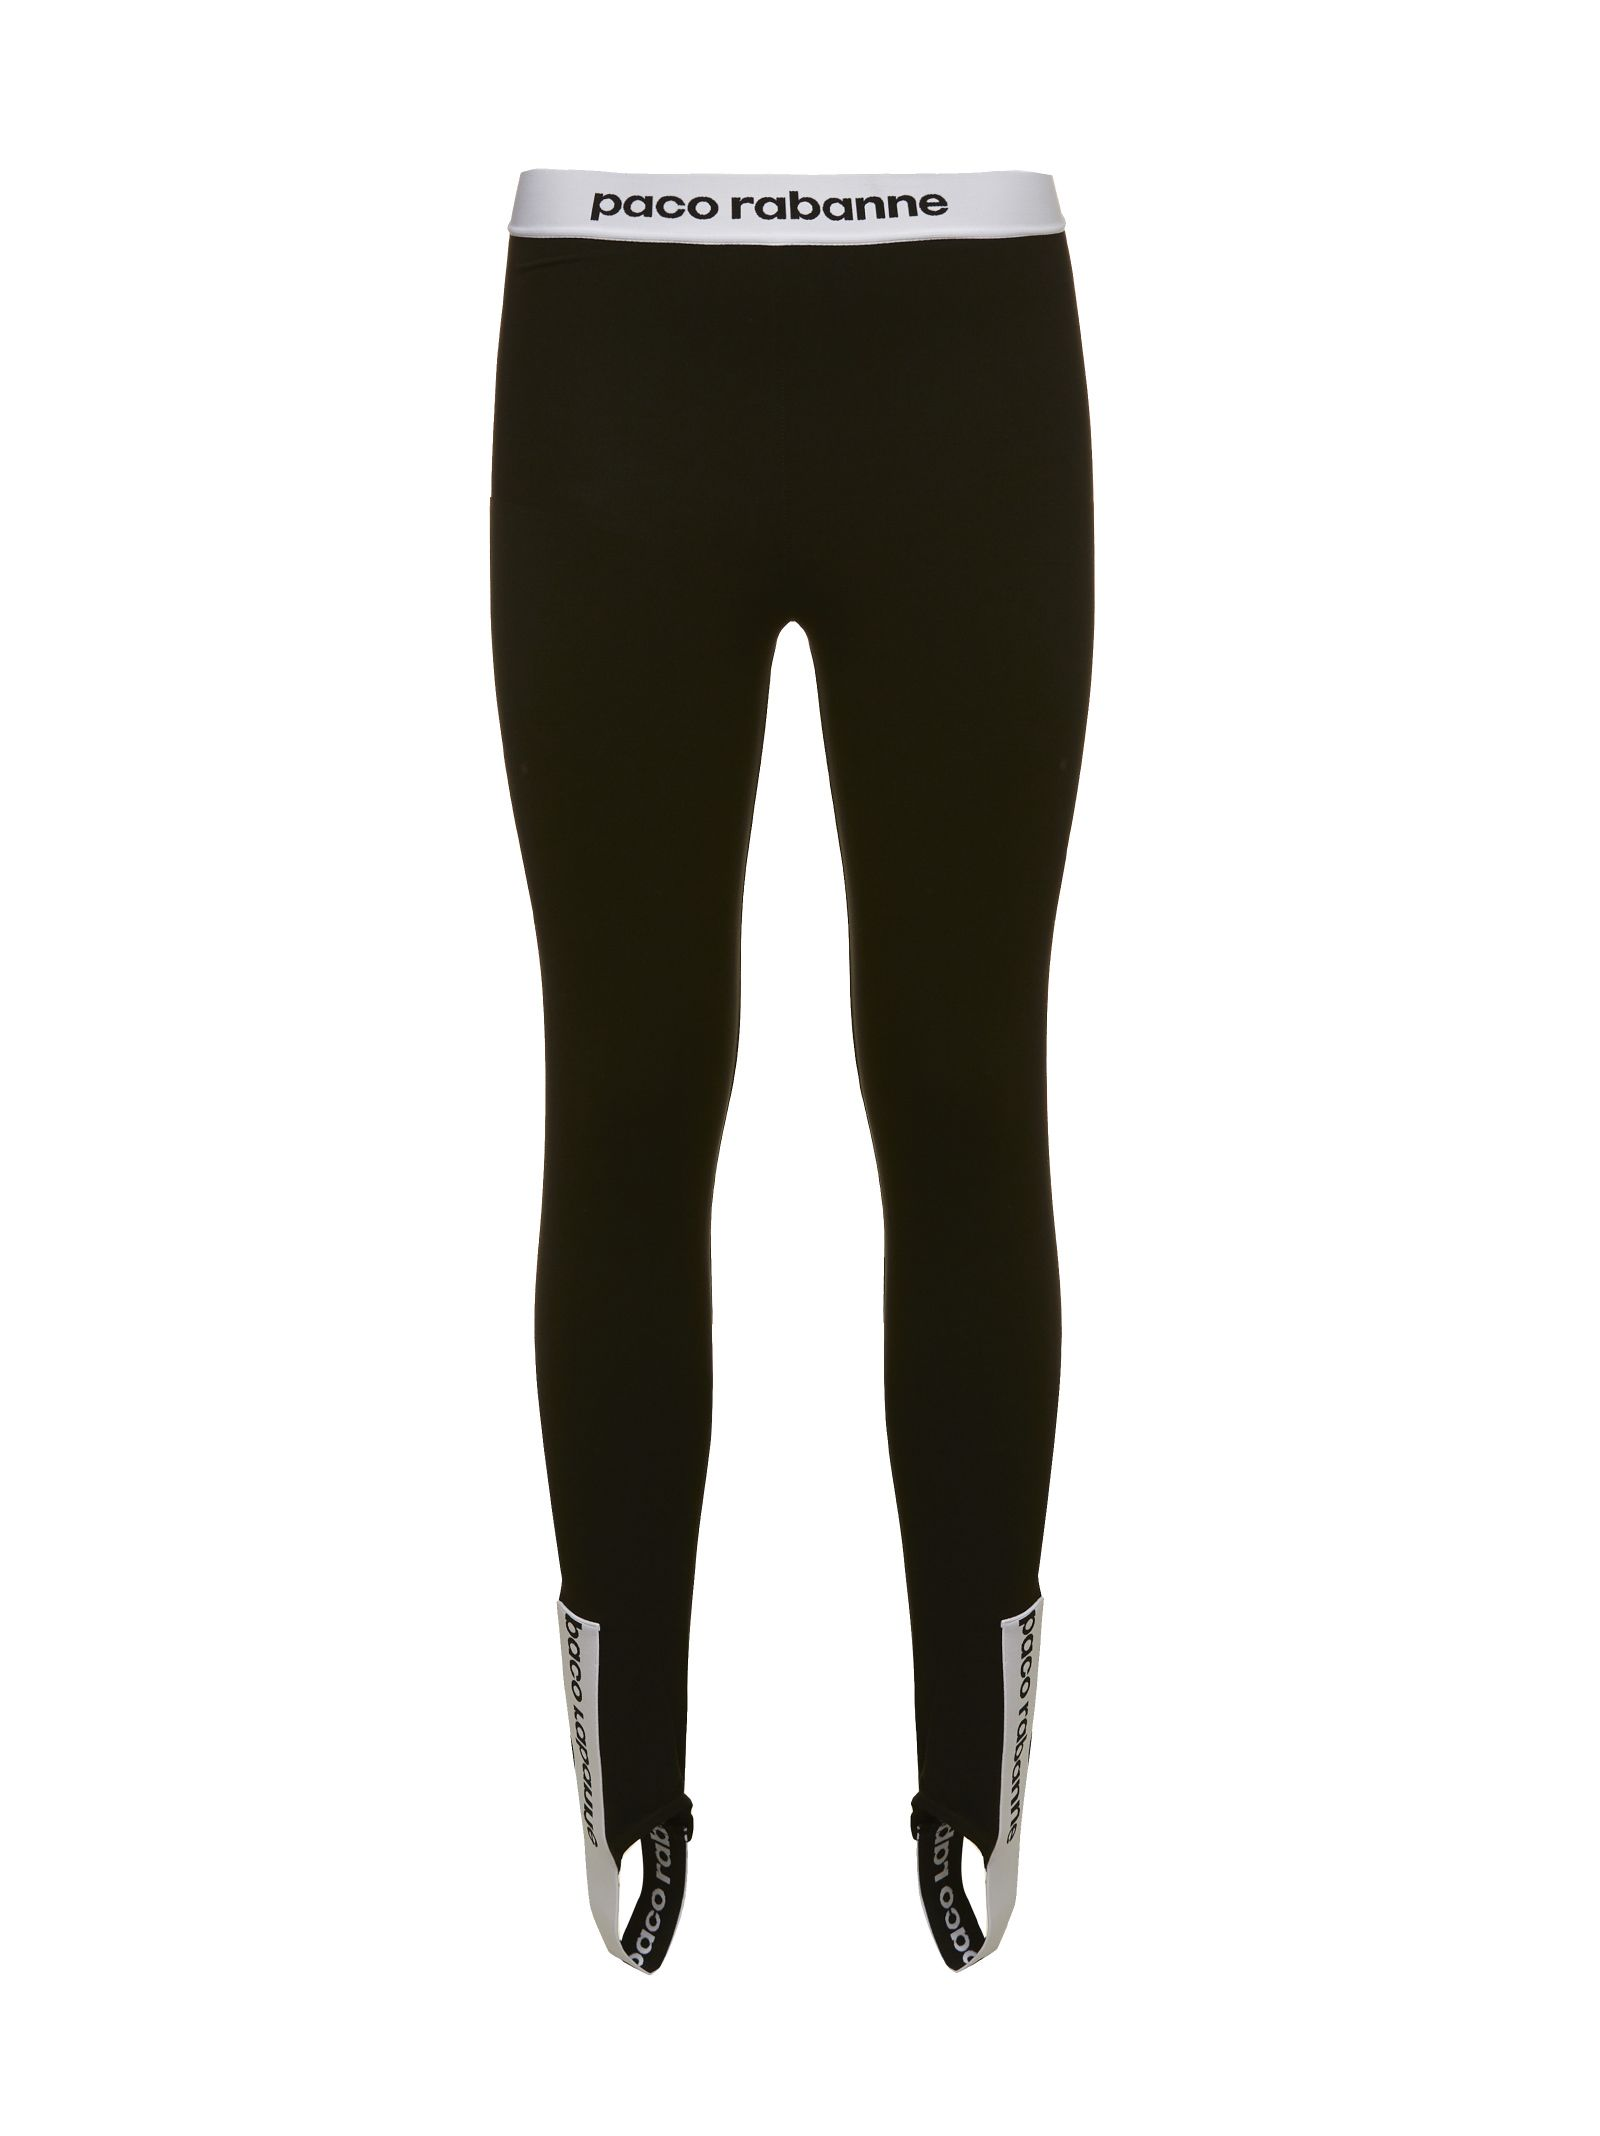 Paco Rabanne Stirrup Leggings